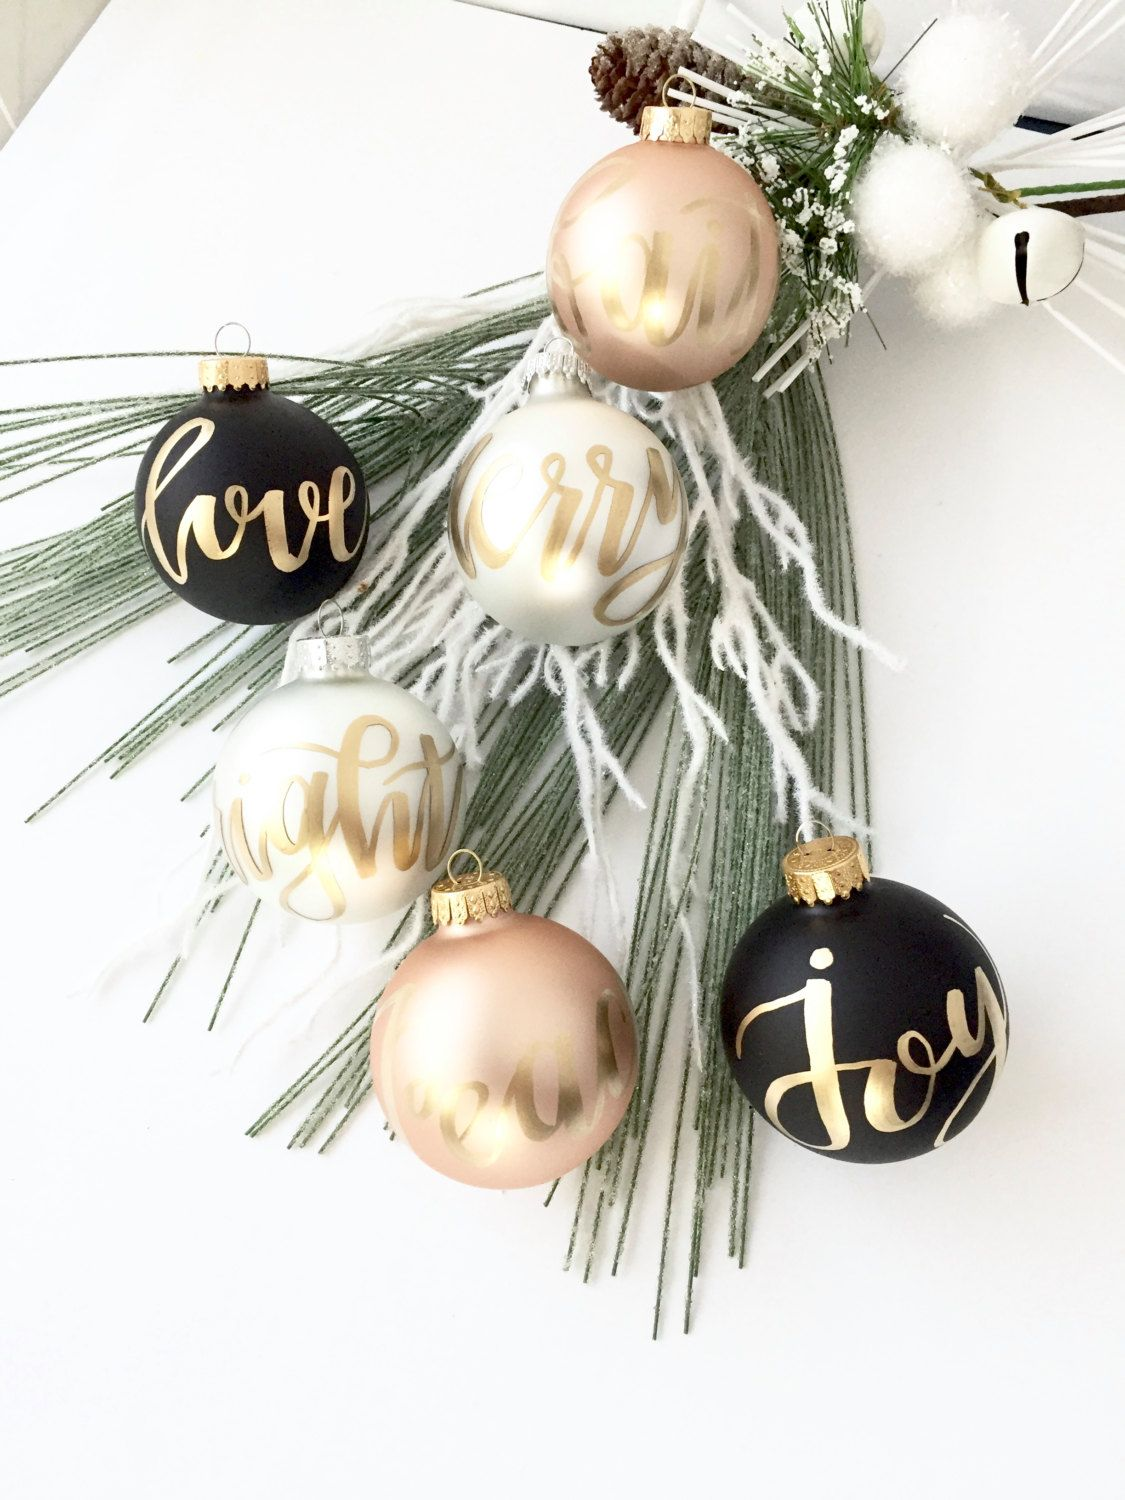 White Black And Rose Ornament Set Christmas Ornament Modern Calligraphy Ornament Gl Gold Christmas Decorations Black Christmas Decorations Christmas Trends